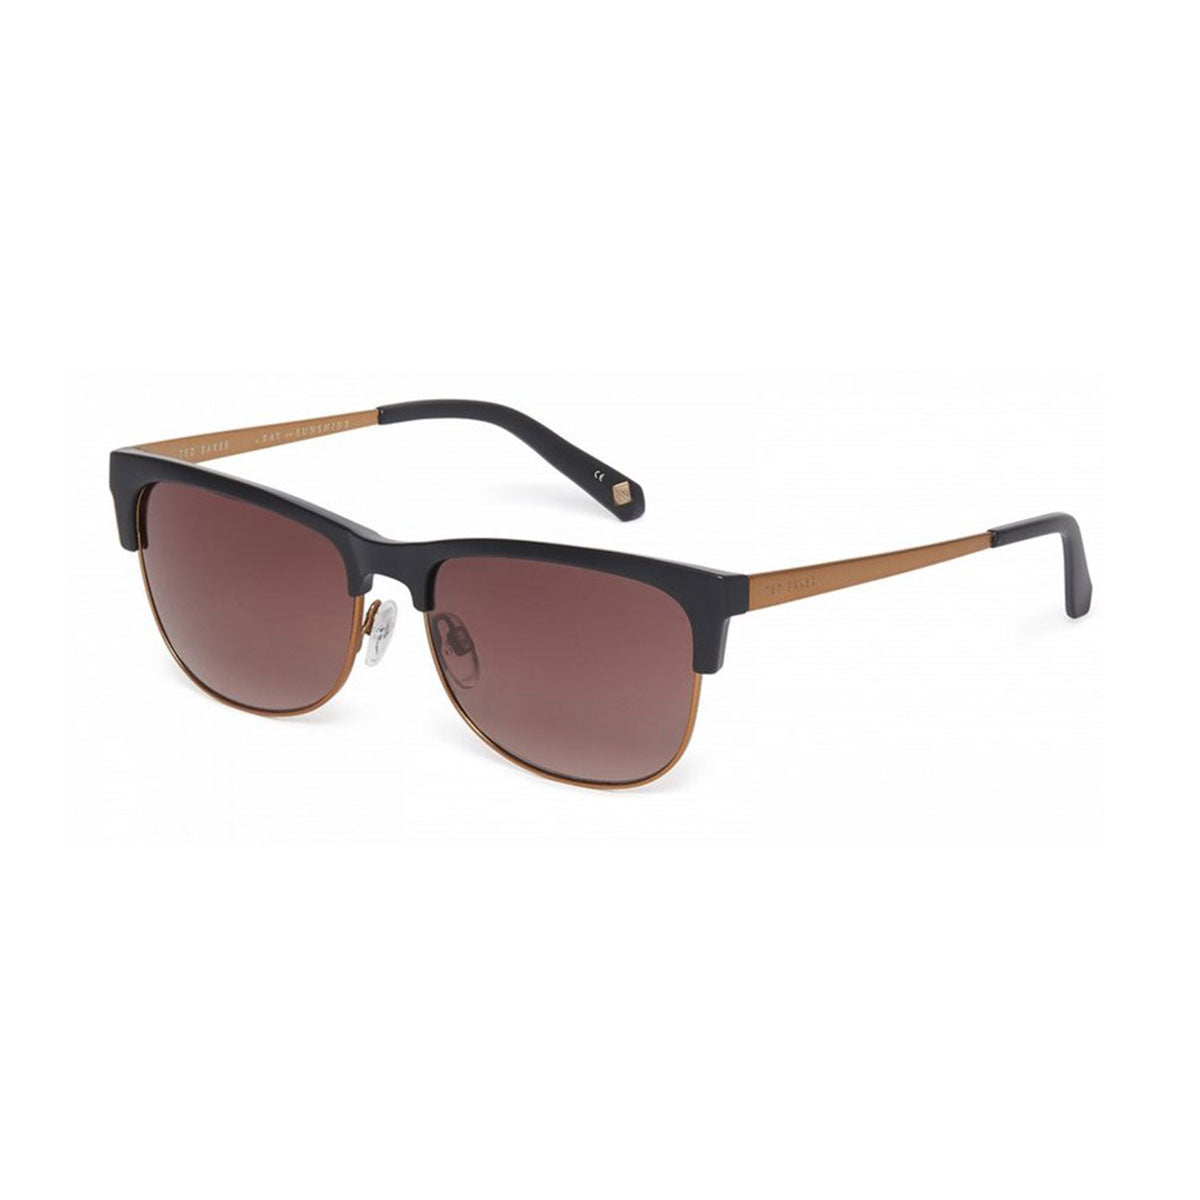 Ted Baker Dalton TB1528 001 Men's Sunglasses